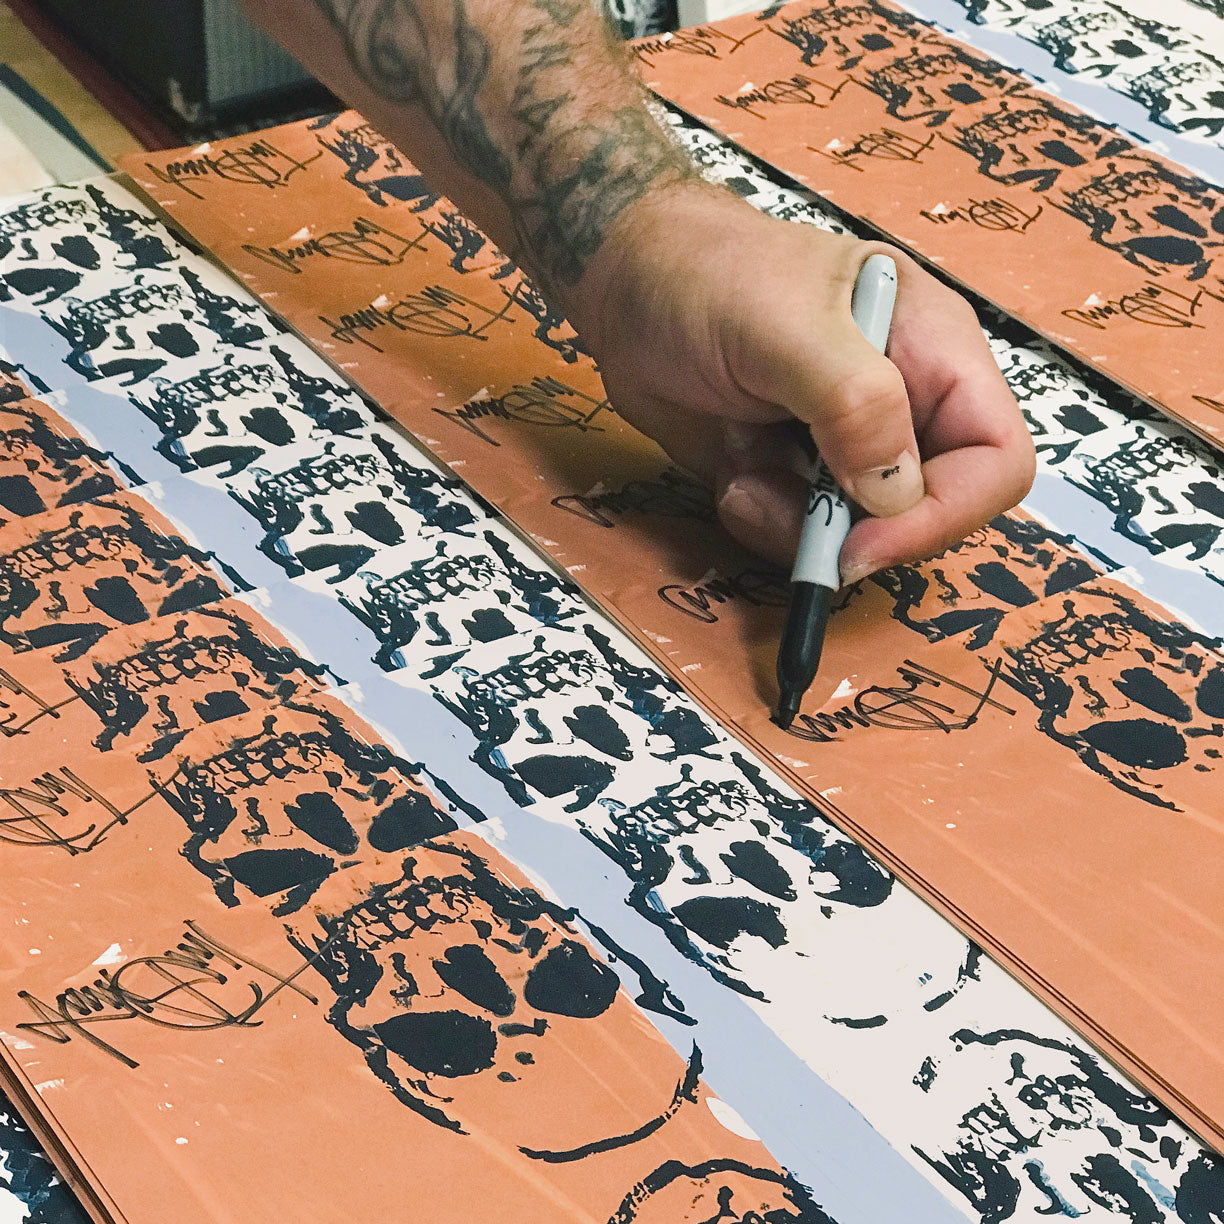 NEW PRINT FROM TIM ARMSTRONG COMING SOON